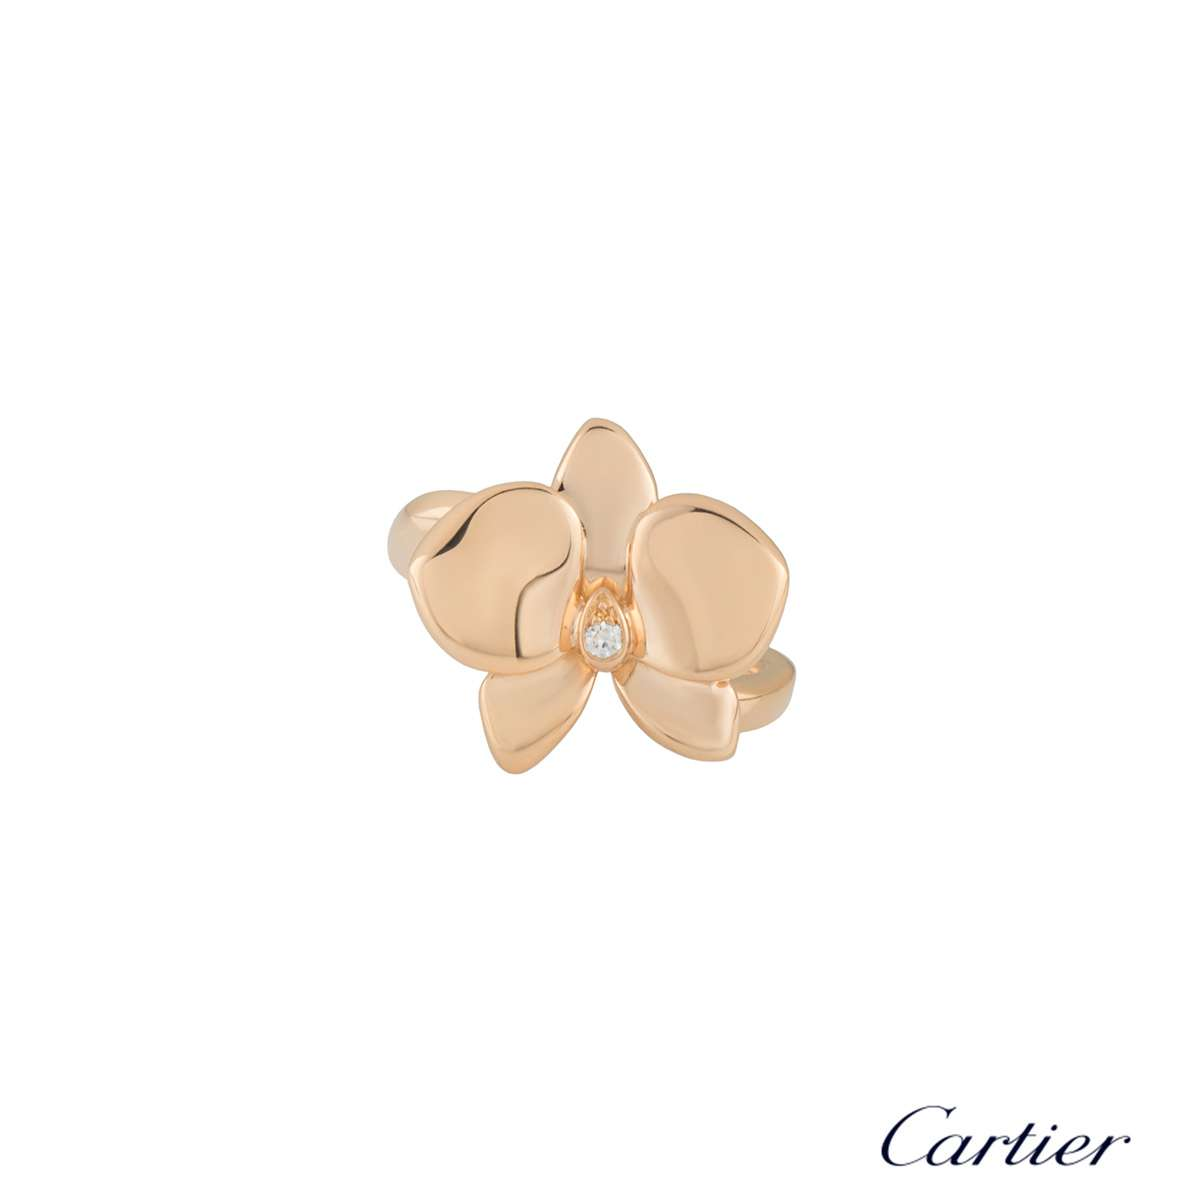 Cartier Rose Gold Diamond DOrchidees Ring B4074952